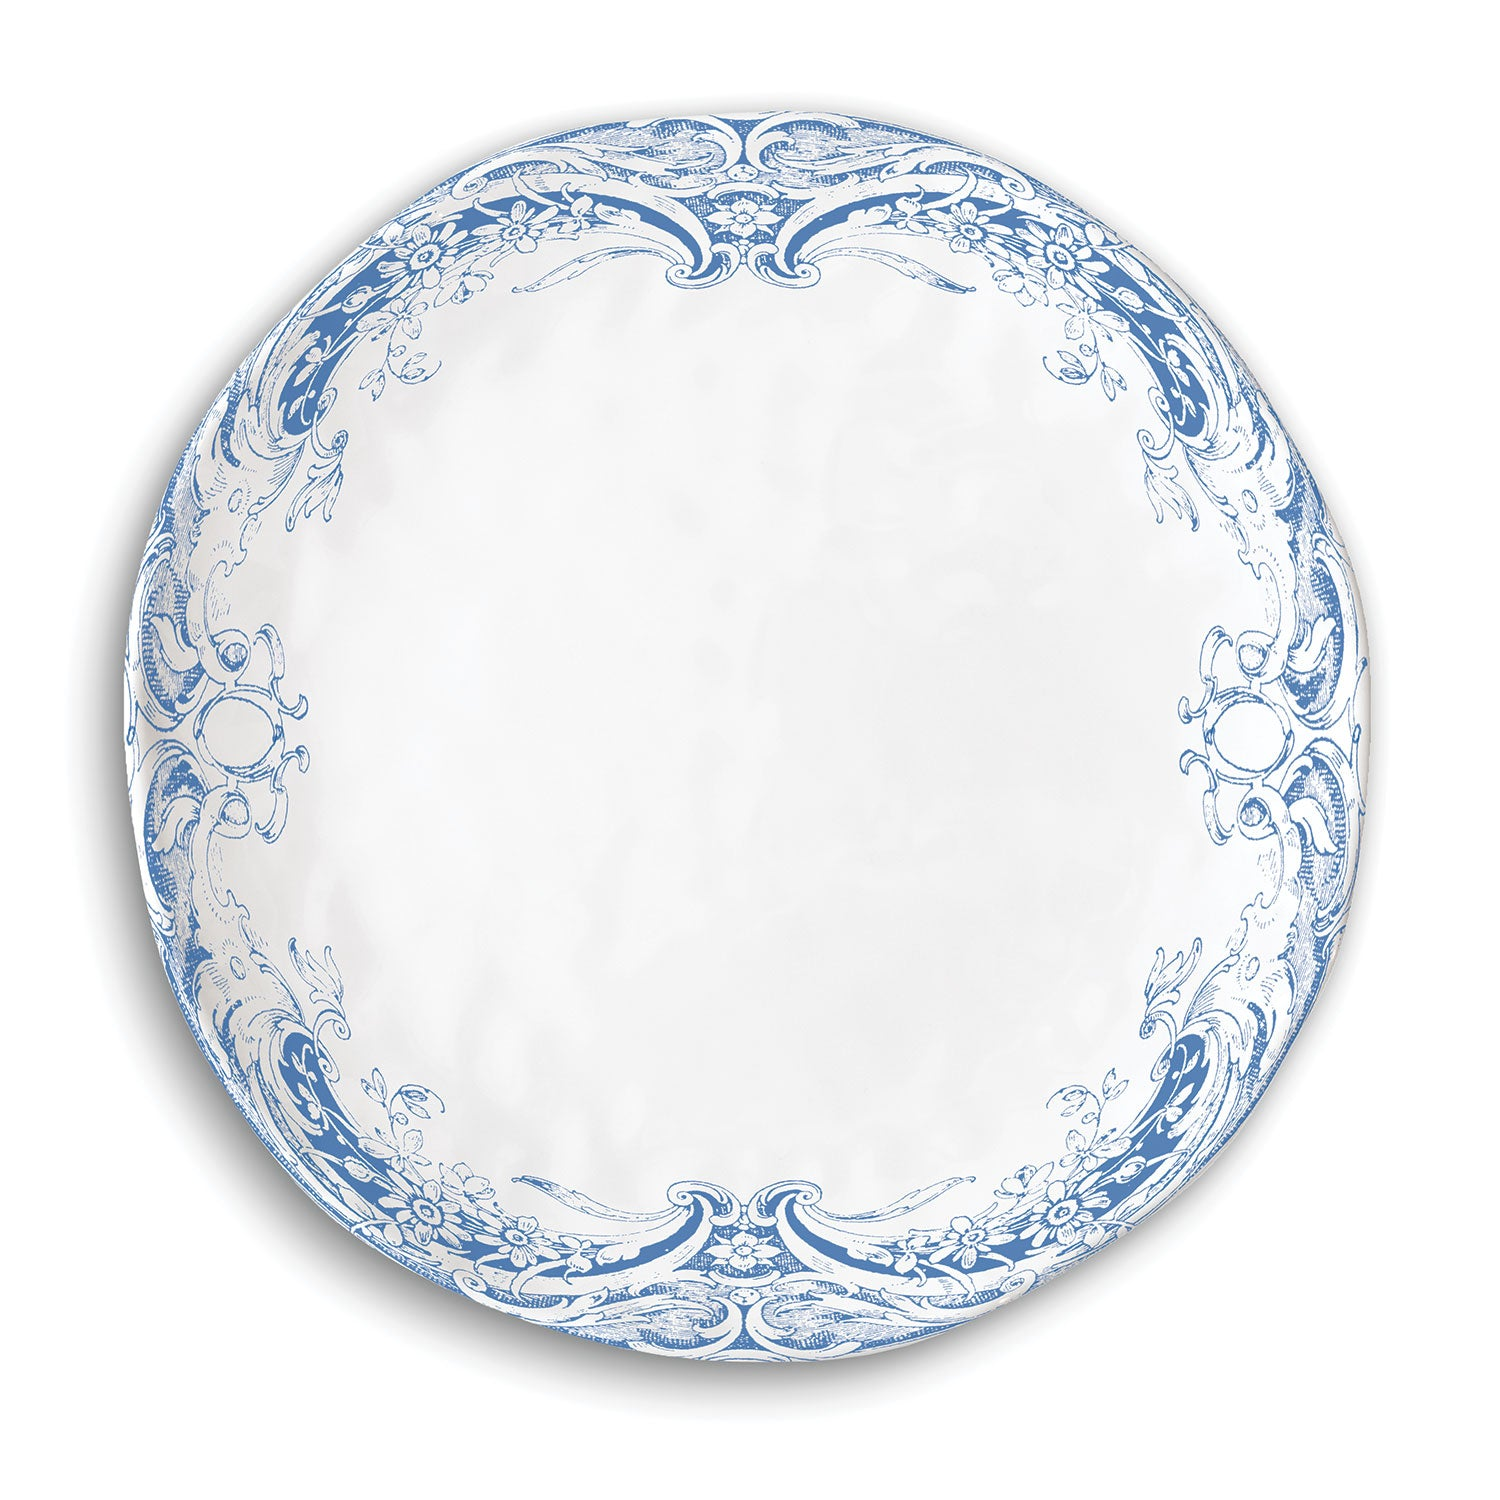 Antique Scroll Melamine Casual Dinner Plate